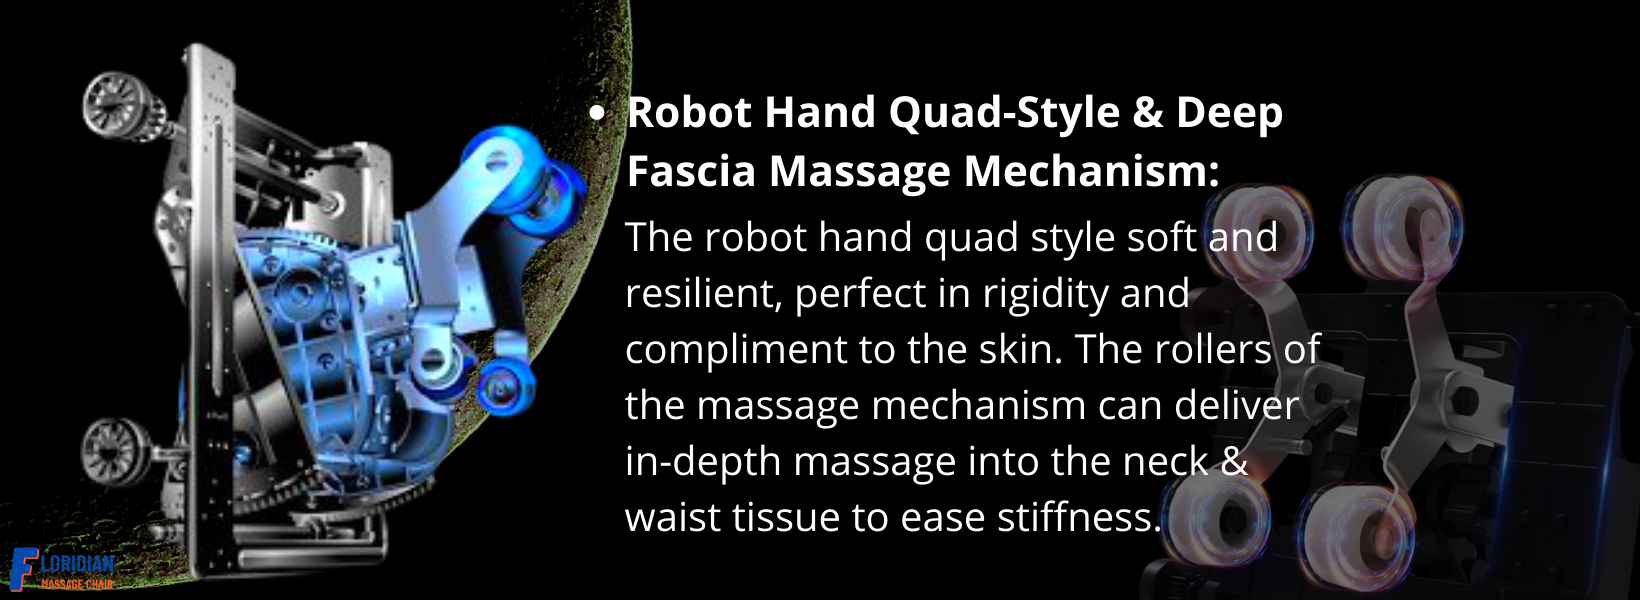 The robot hand quad style soft and resilient, perfect in rigidity and compliment to the skin. The rollers of the massage mechanism can delivers in-depth massage into the neck & waist tissue to ease stiffness.